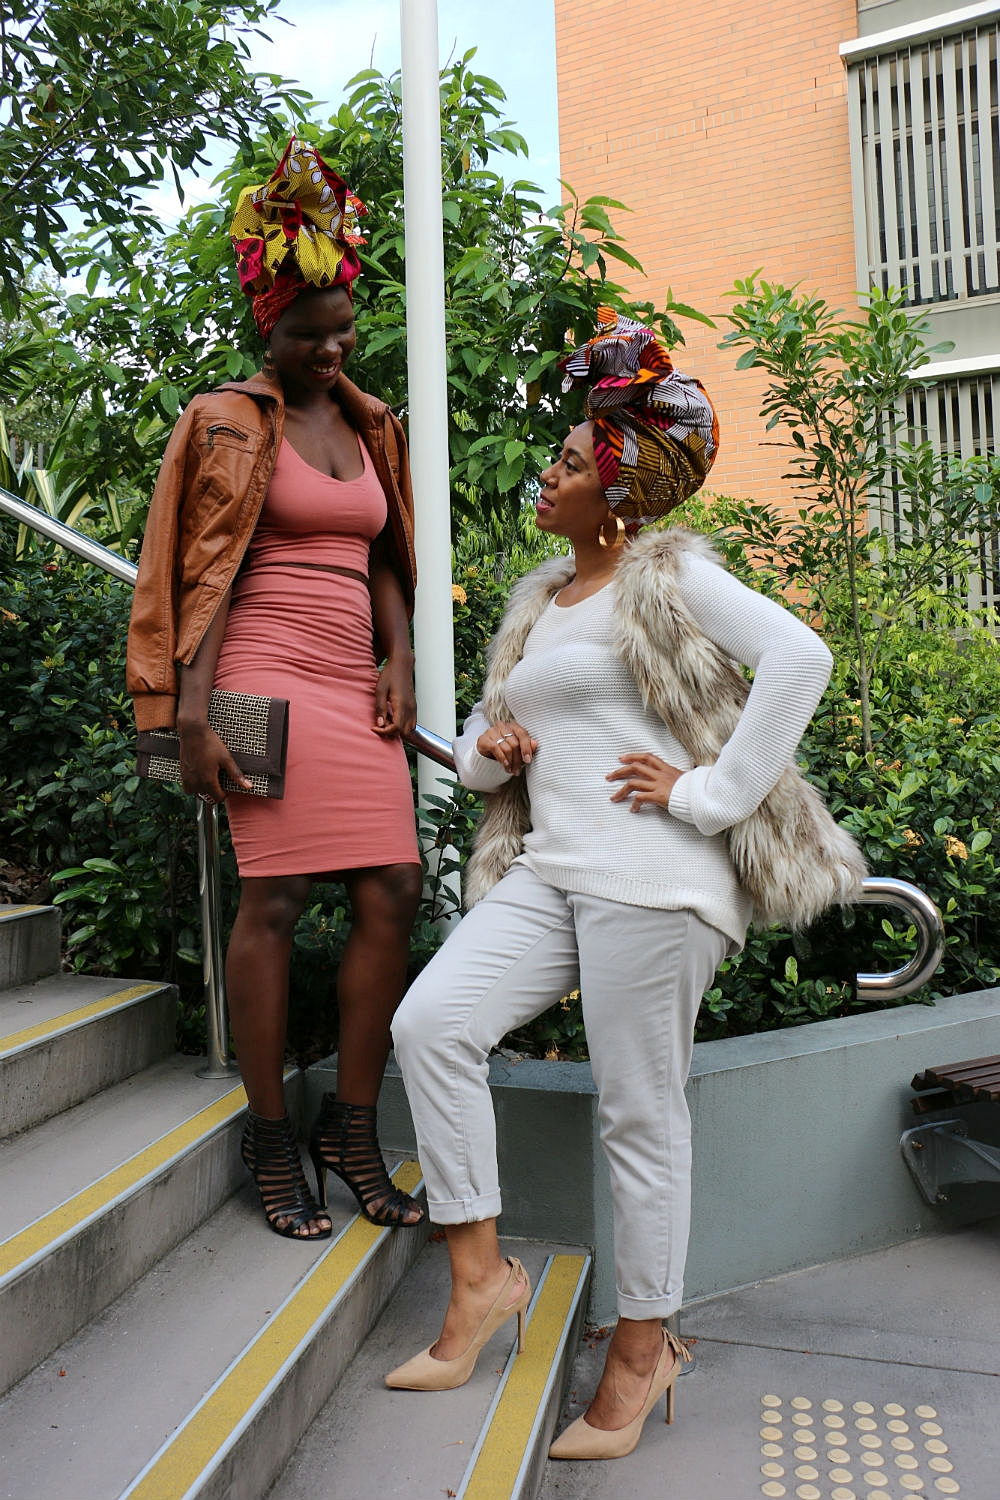 Brand ambassadors ISATA T (L) and GRACEY B (R) showcase headwraps TAMARA (L) and SHERRI (R).